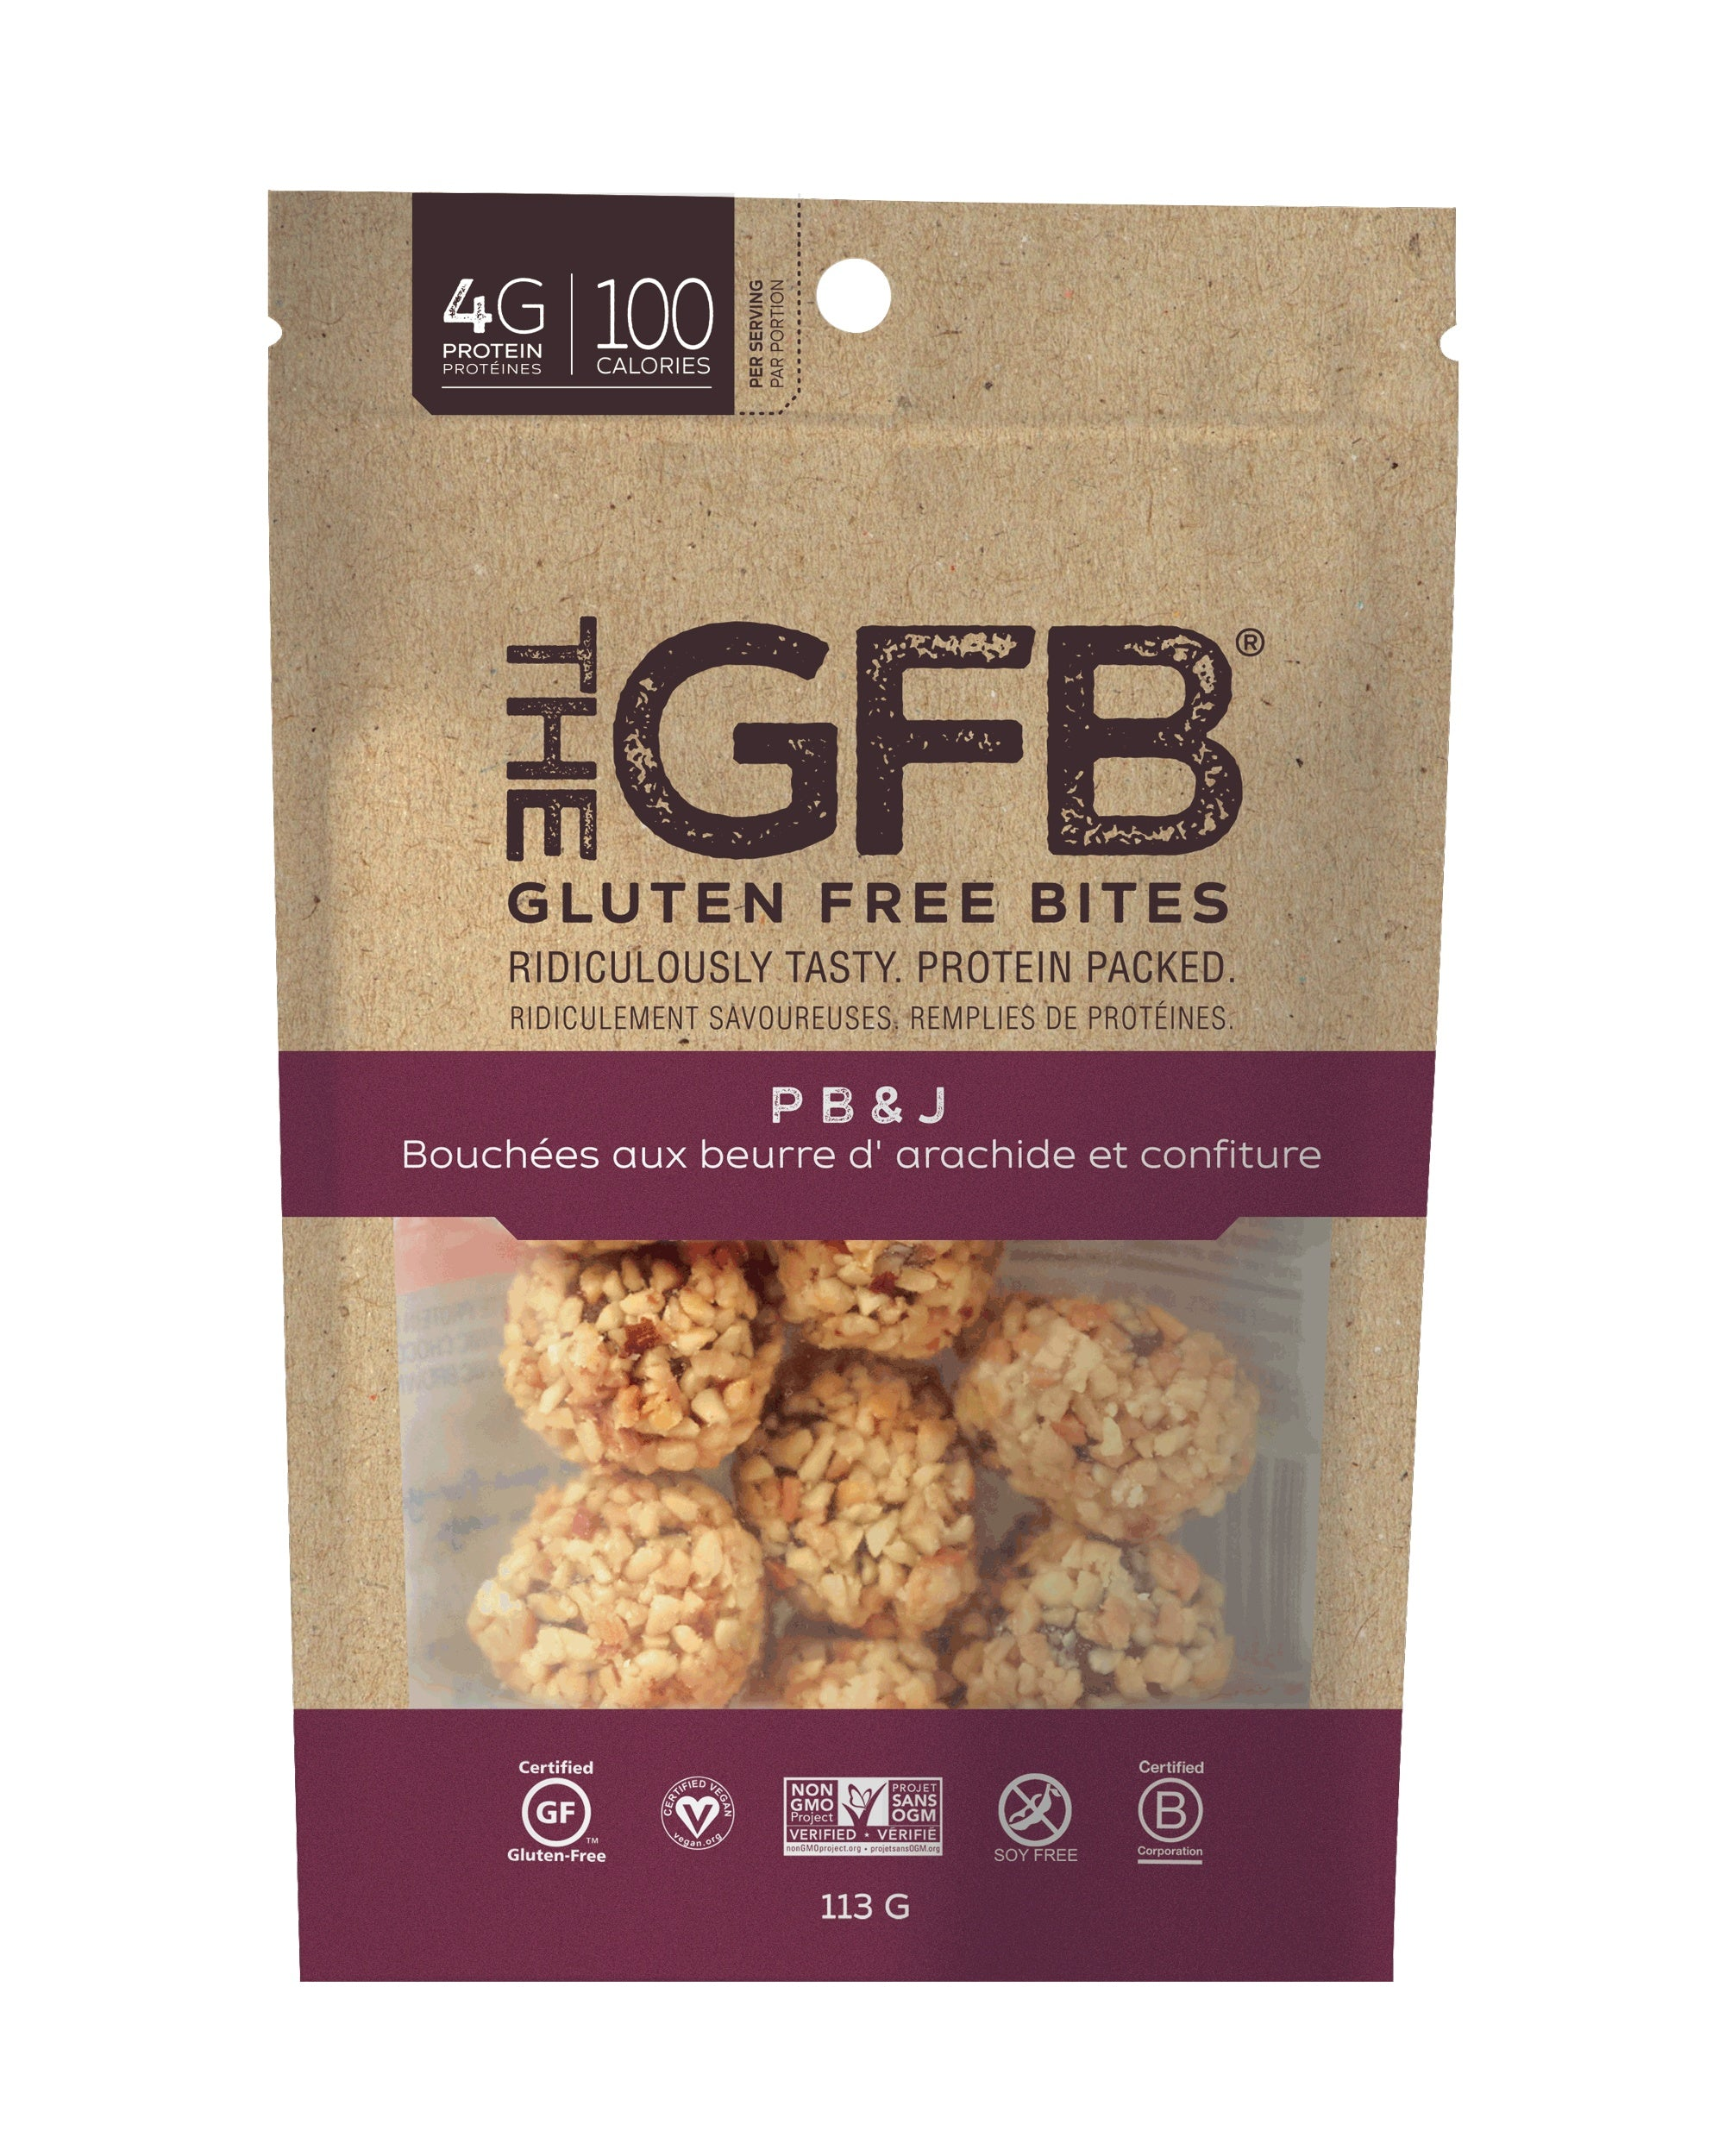 Food & Drink - Gluten Free Bar - Peanut Butter & Jelly Bites, 113g